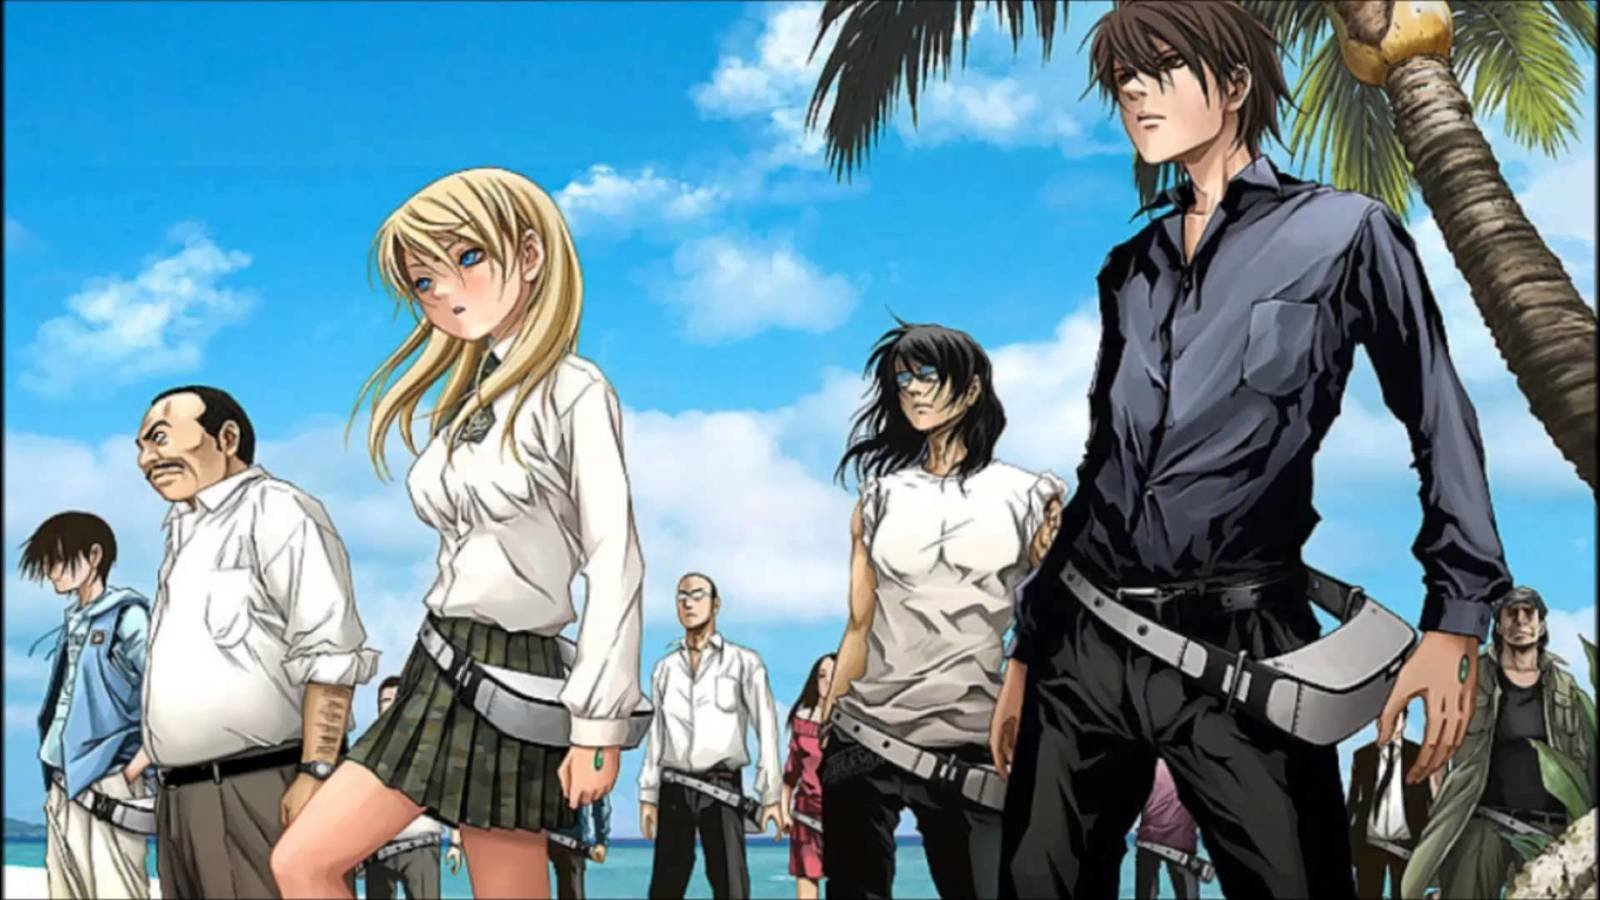 Petition · create btooom season two · change org